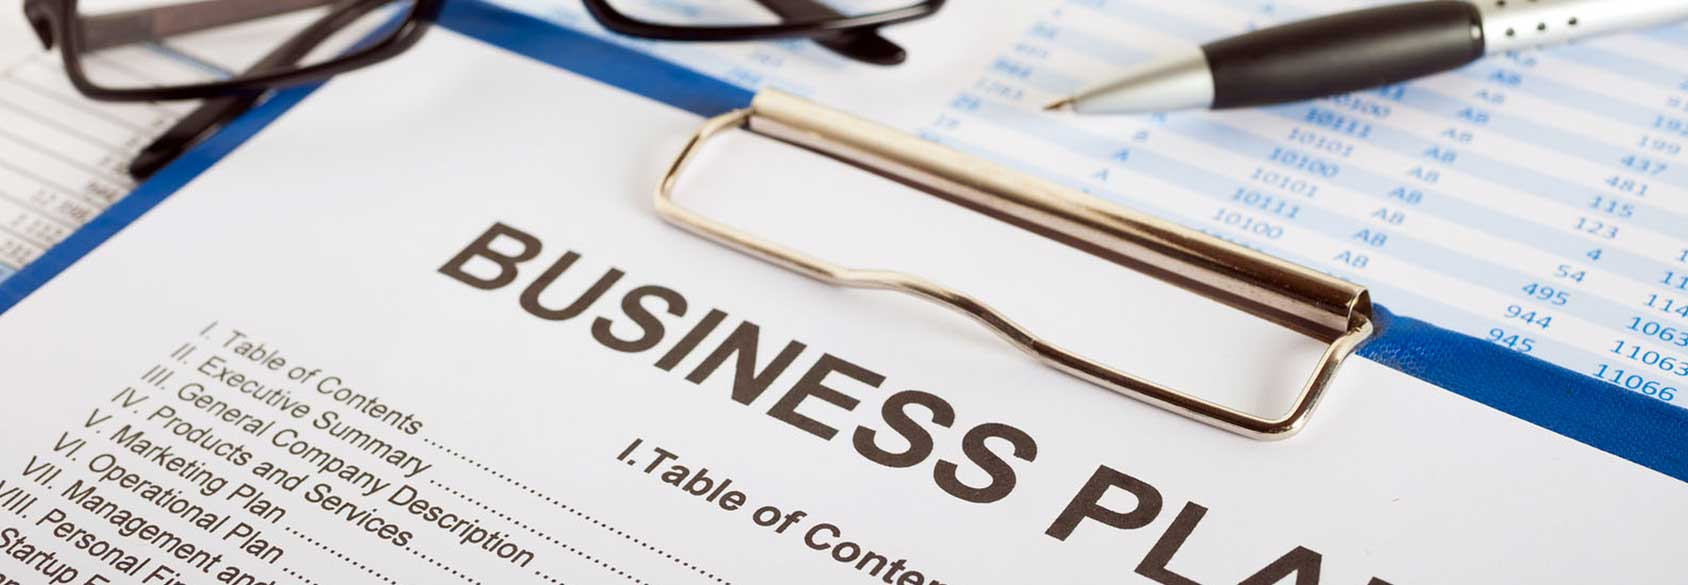 Business Plans For Consulting Services